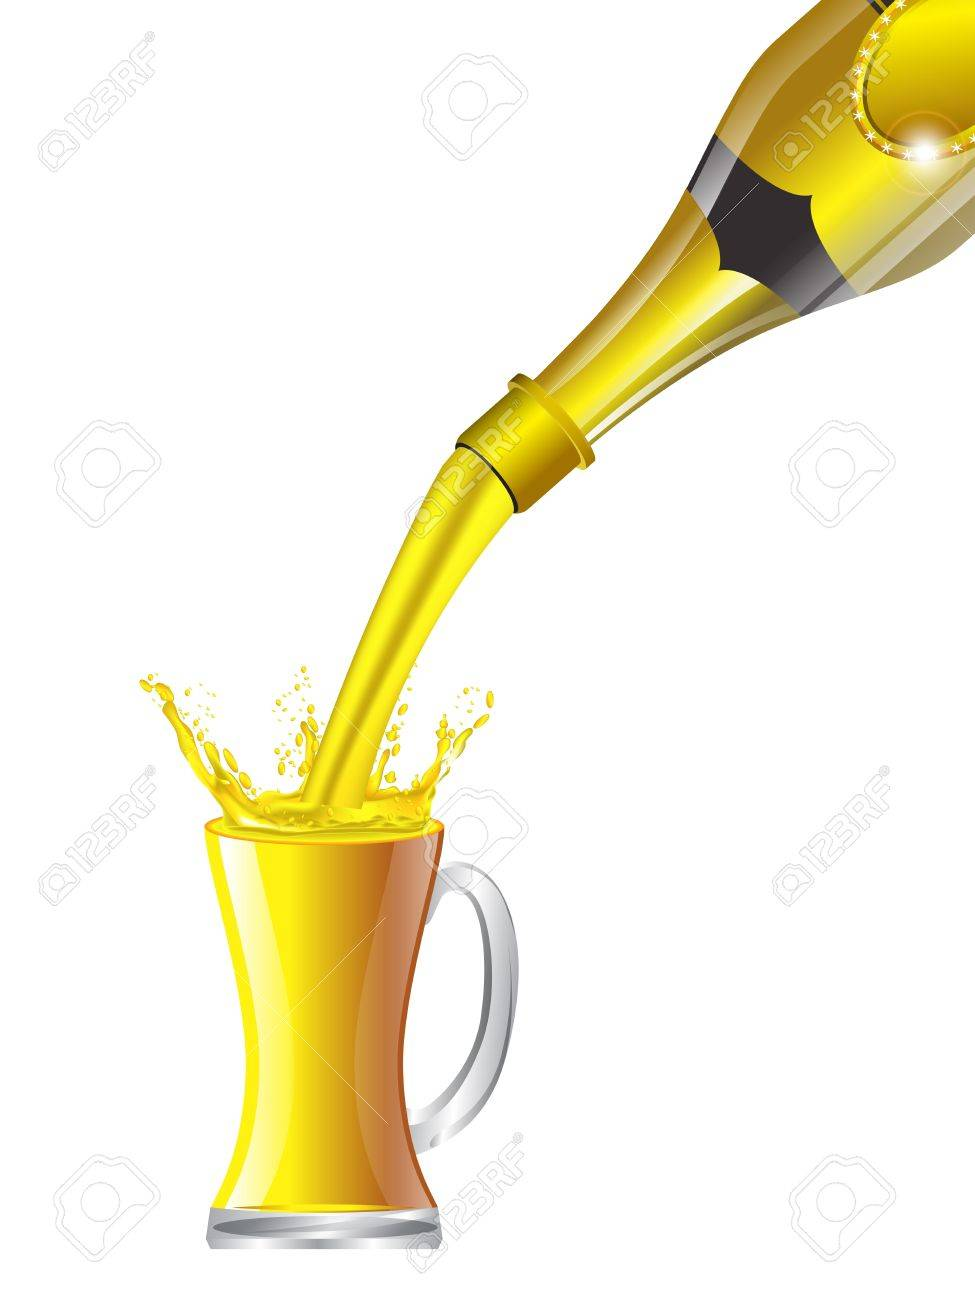 Beer pouring from bottle into glass on white background Stock Vector - 12803092